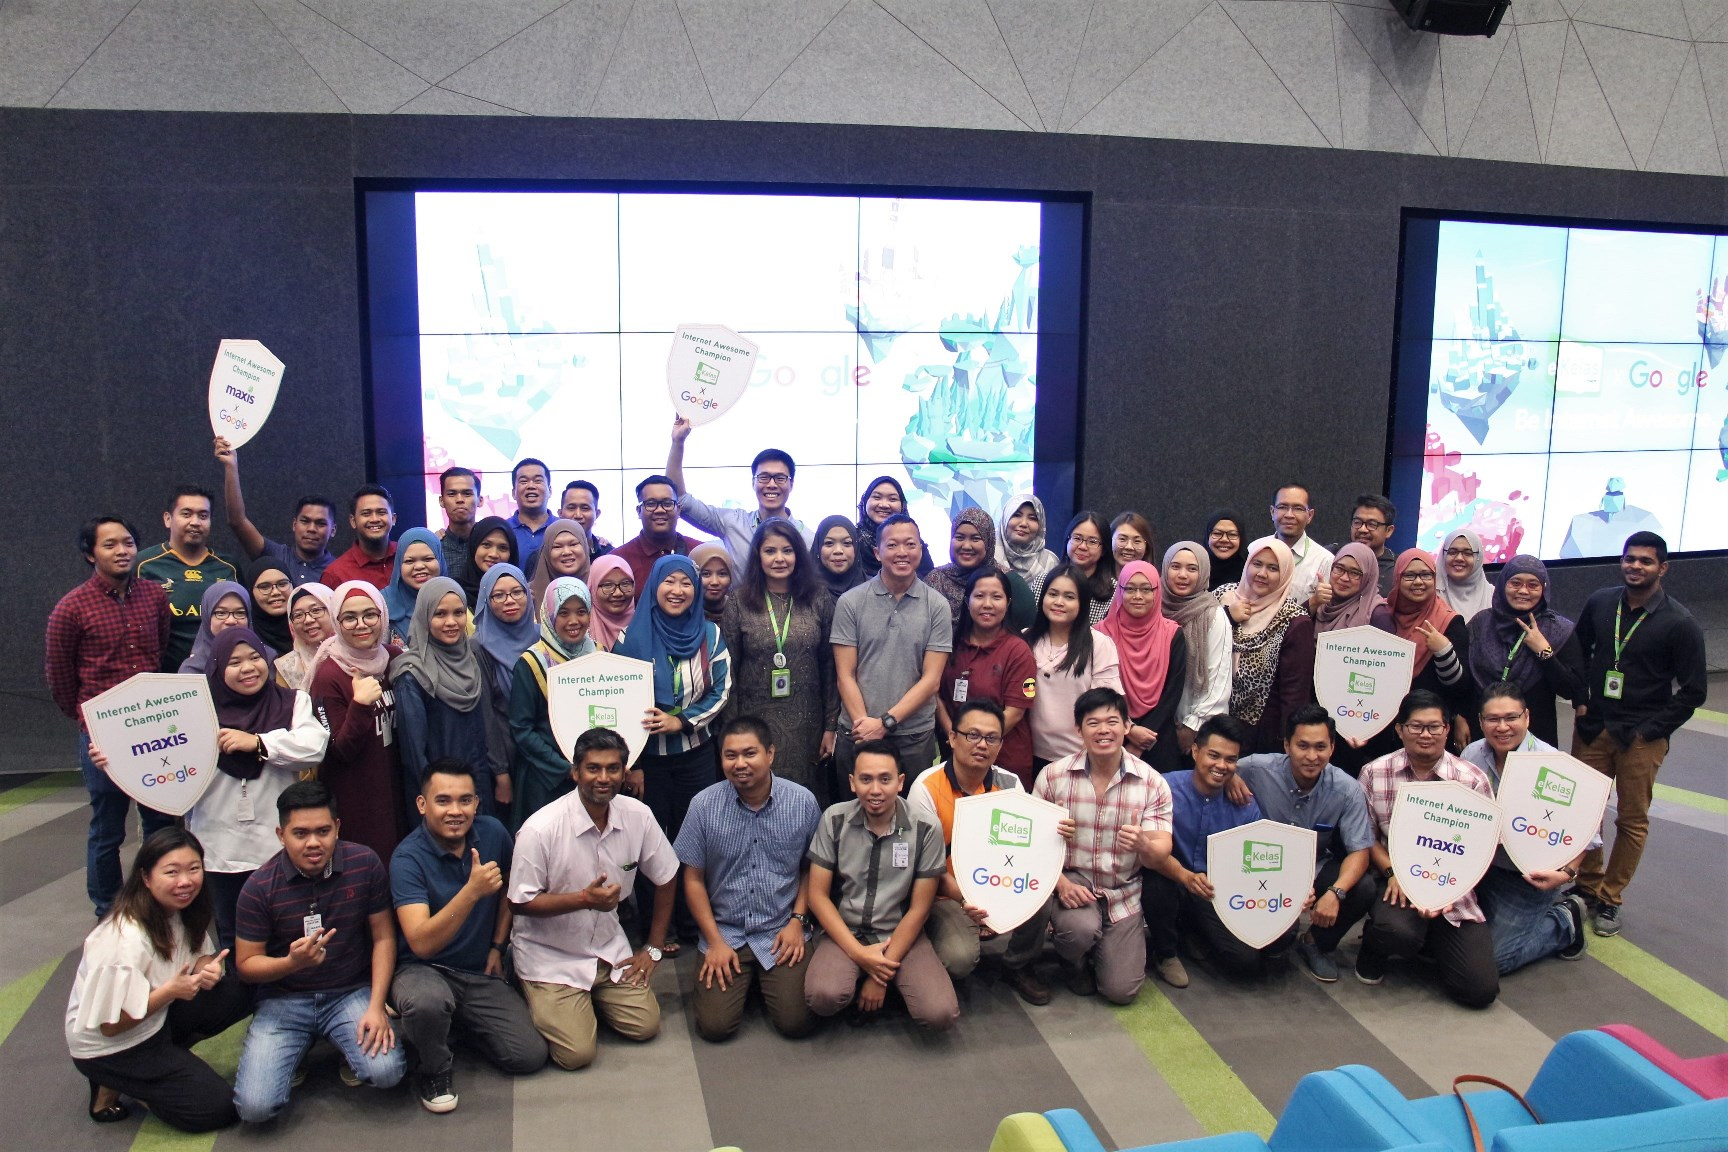 maxis collaborates with google